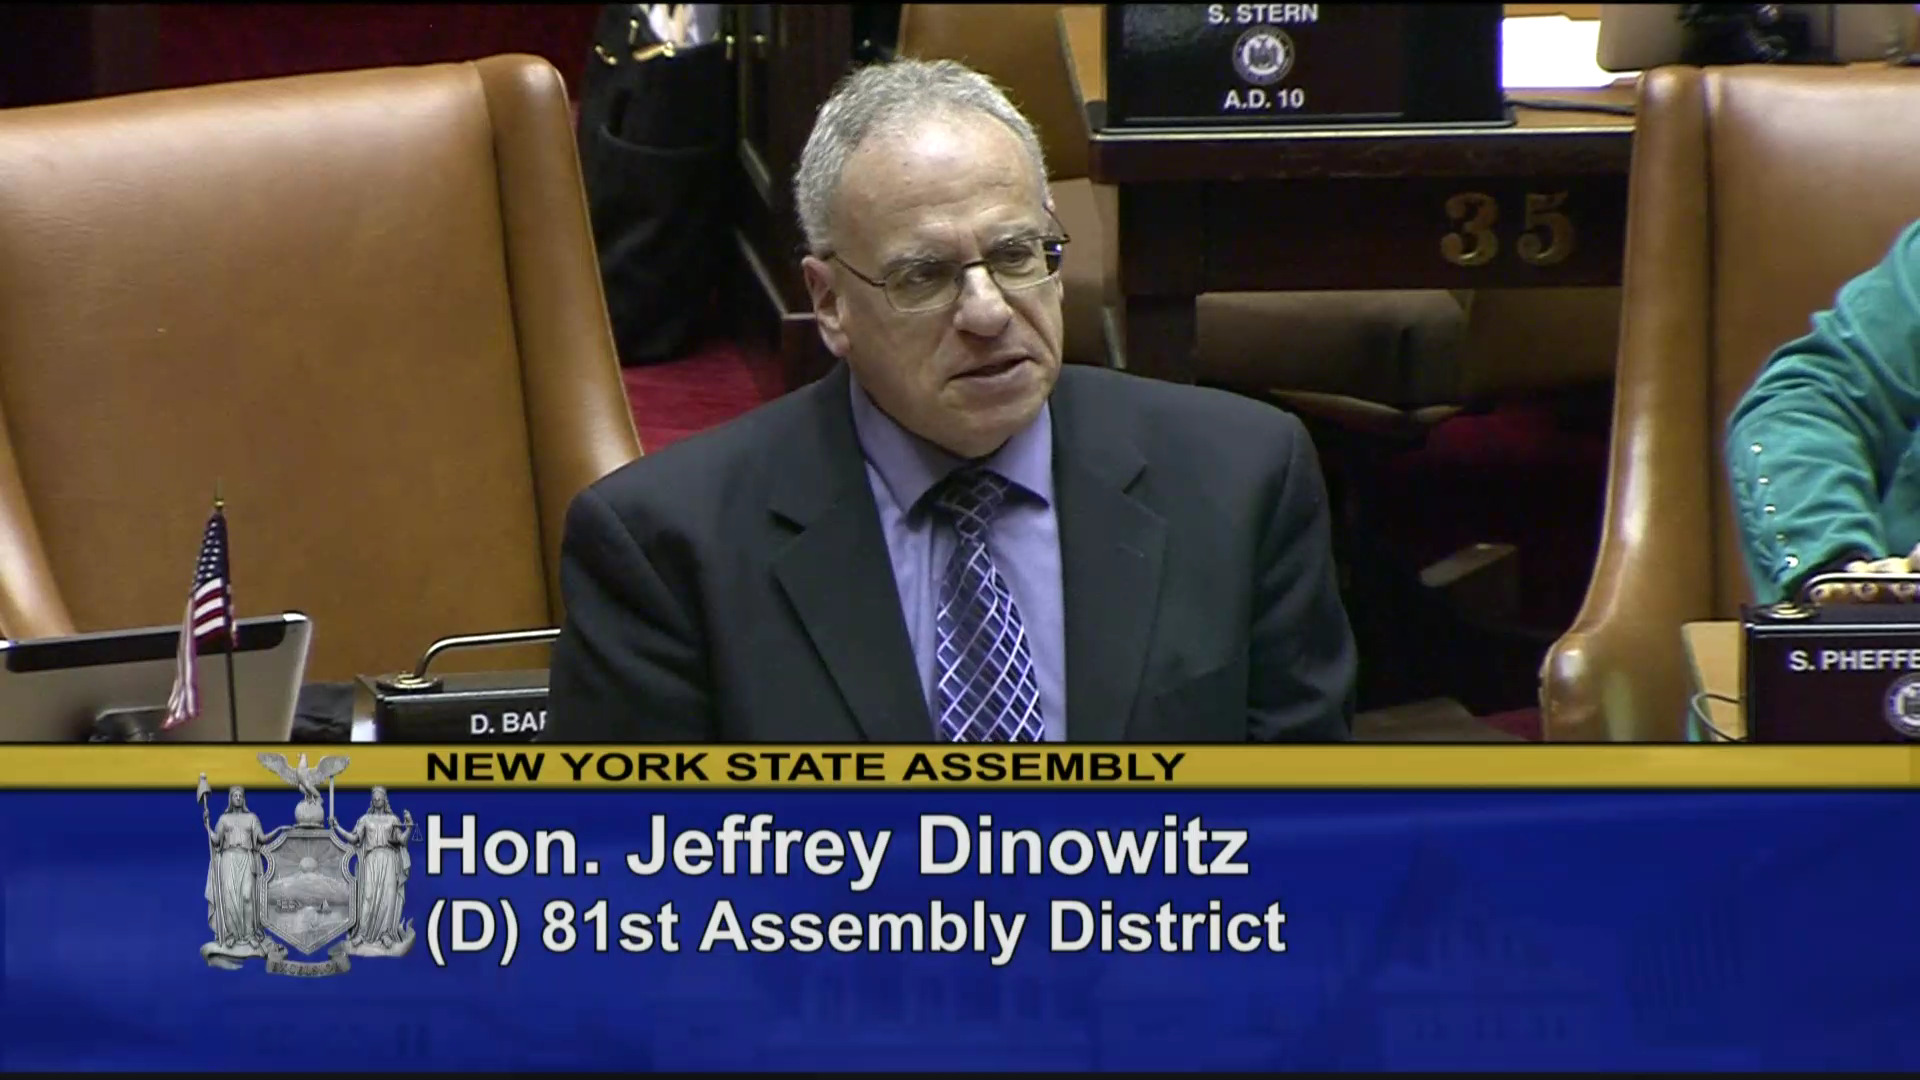 Dinowitz Works to Prevent Dangerous Individuals from Obtaining Guns